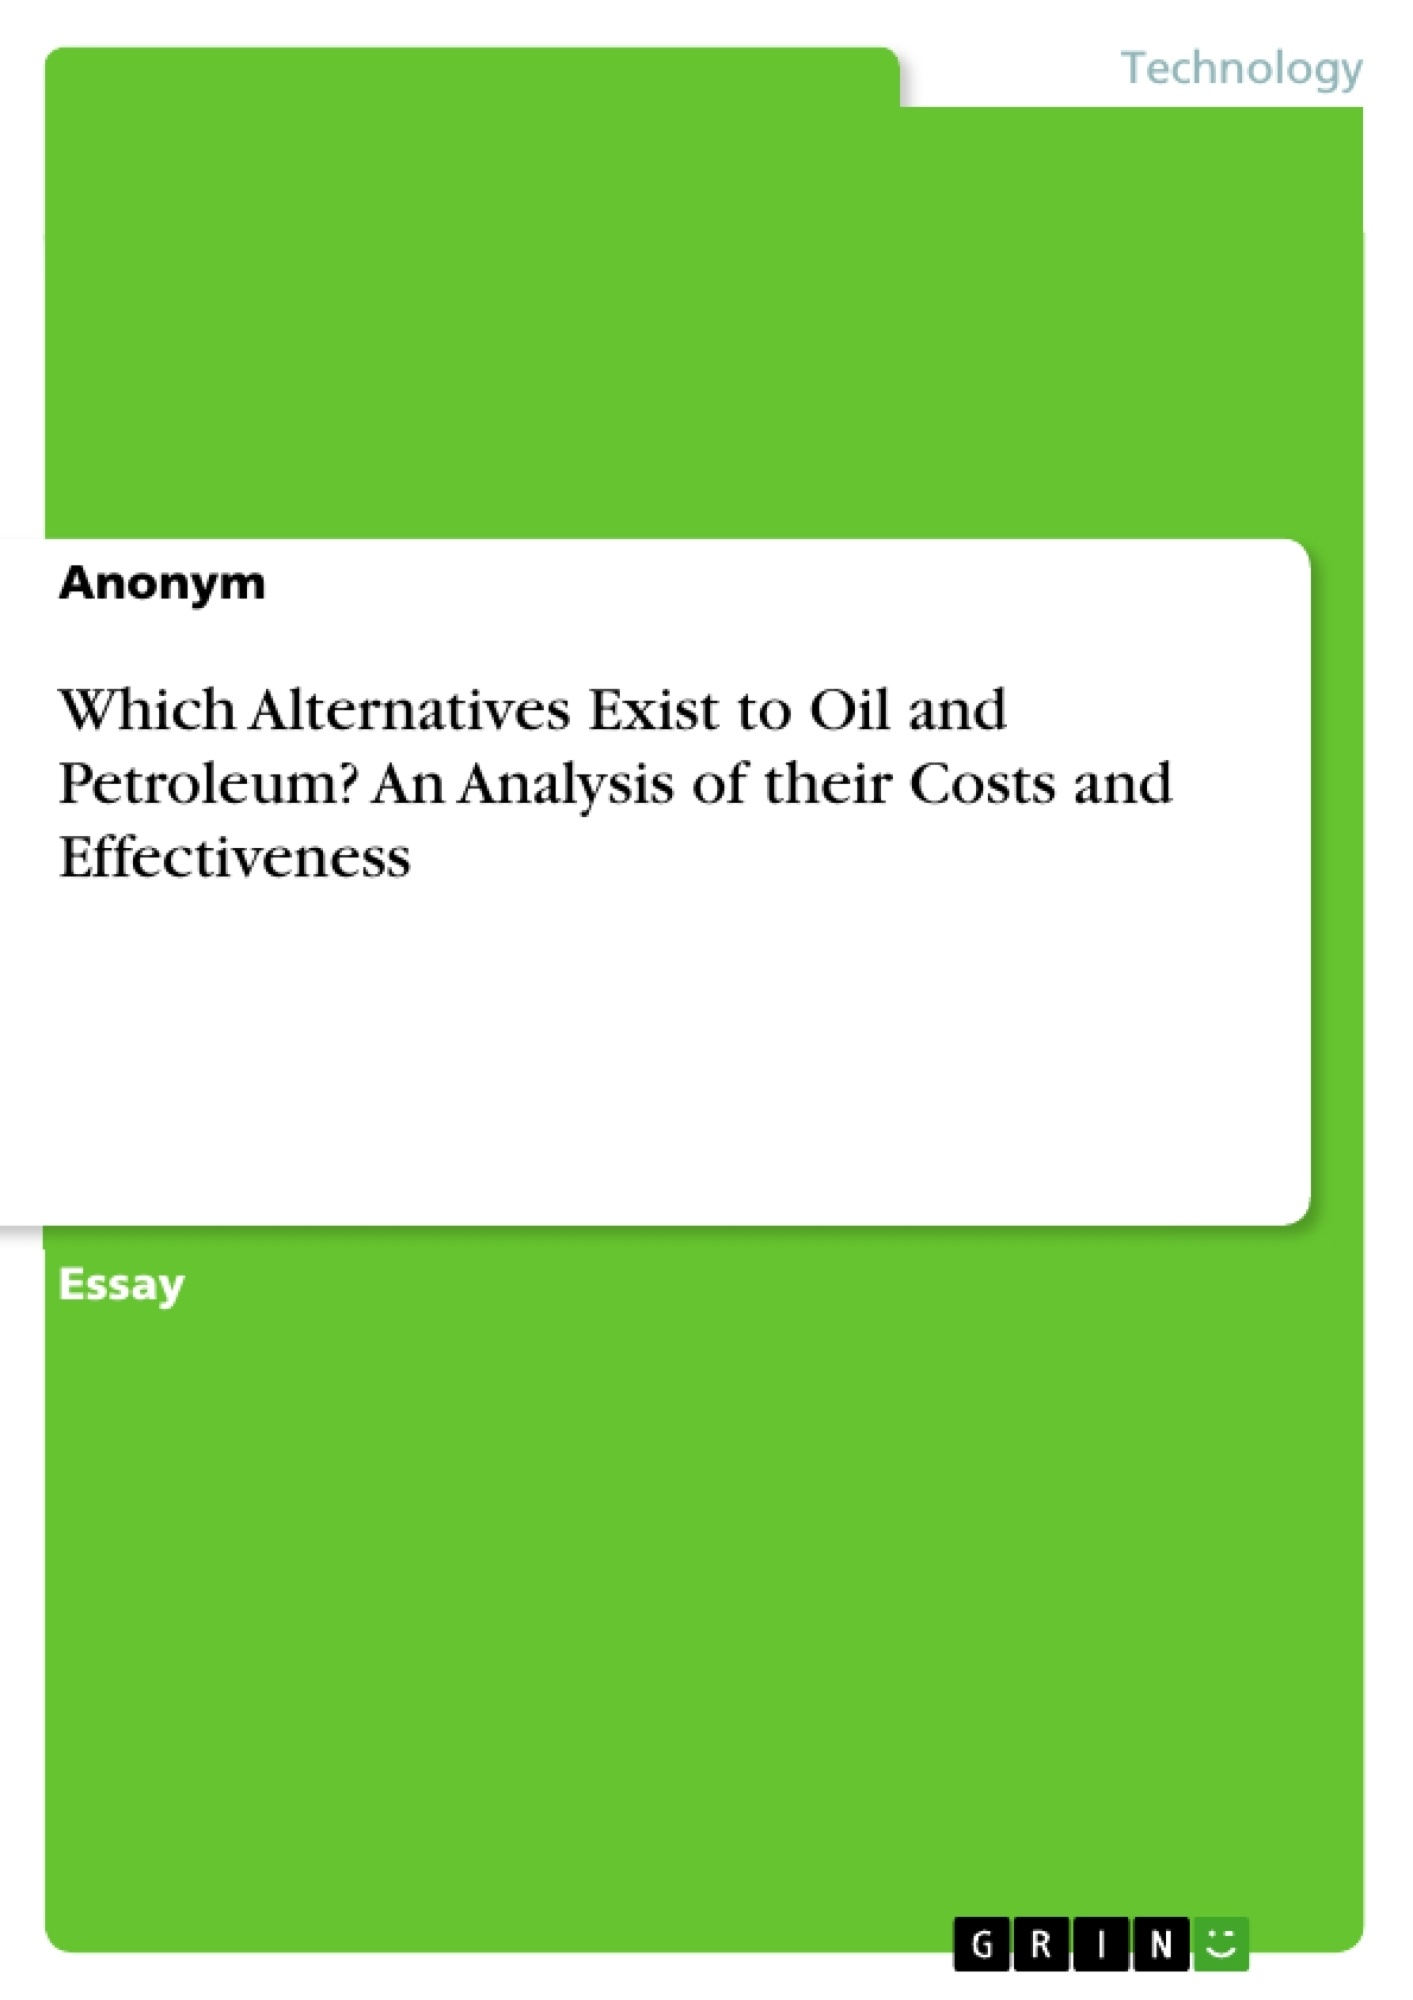 Title: Which Alternatives Exist to Oil and Petroleum? An Analysis of their Costs and Effectiveness